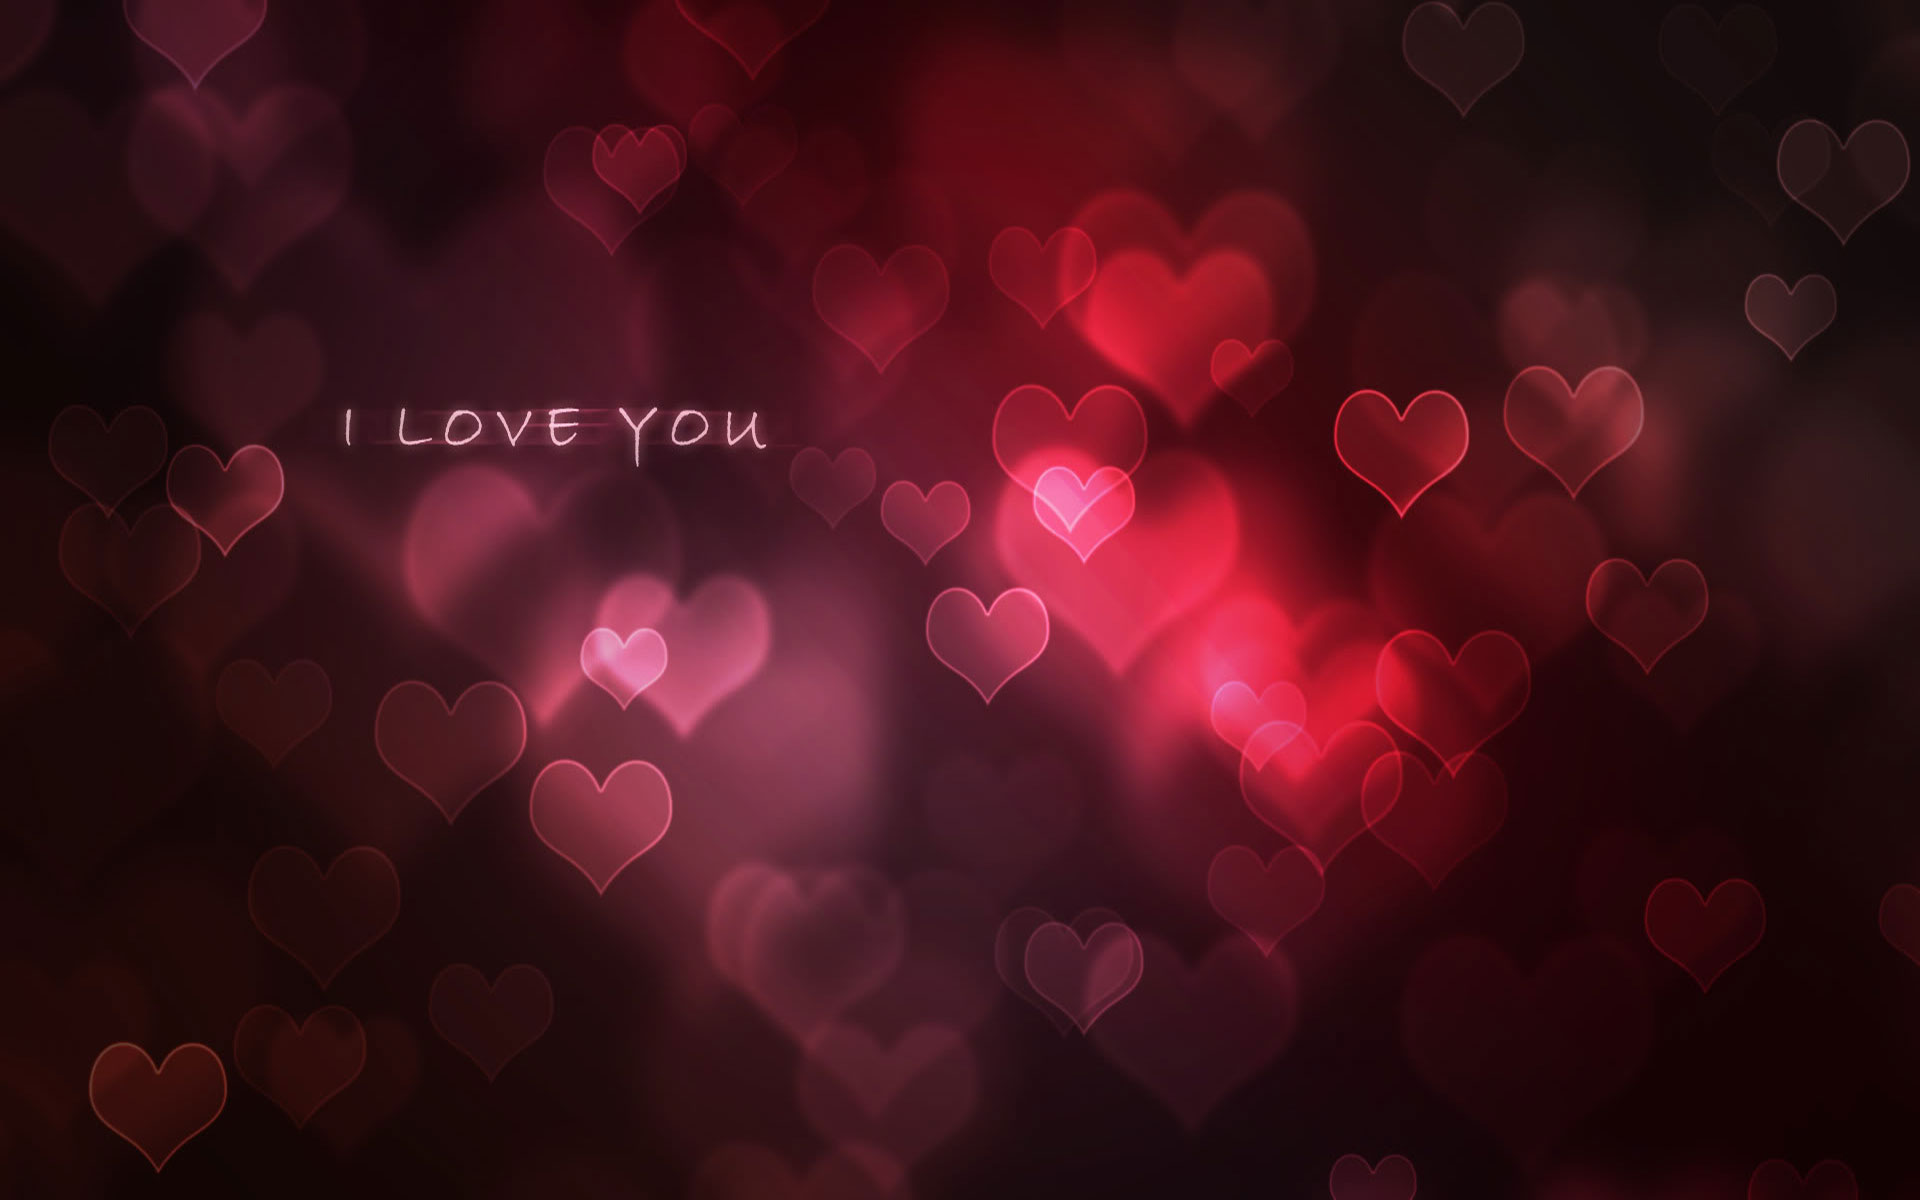 Love Wallpaper Full Hd Downlod : 25+ Free HD I Love You Wallpapers cute I Love You Images